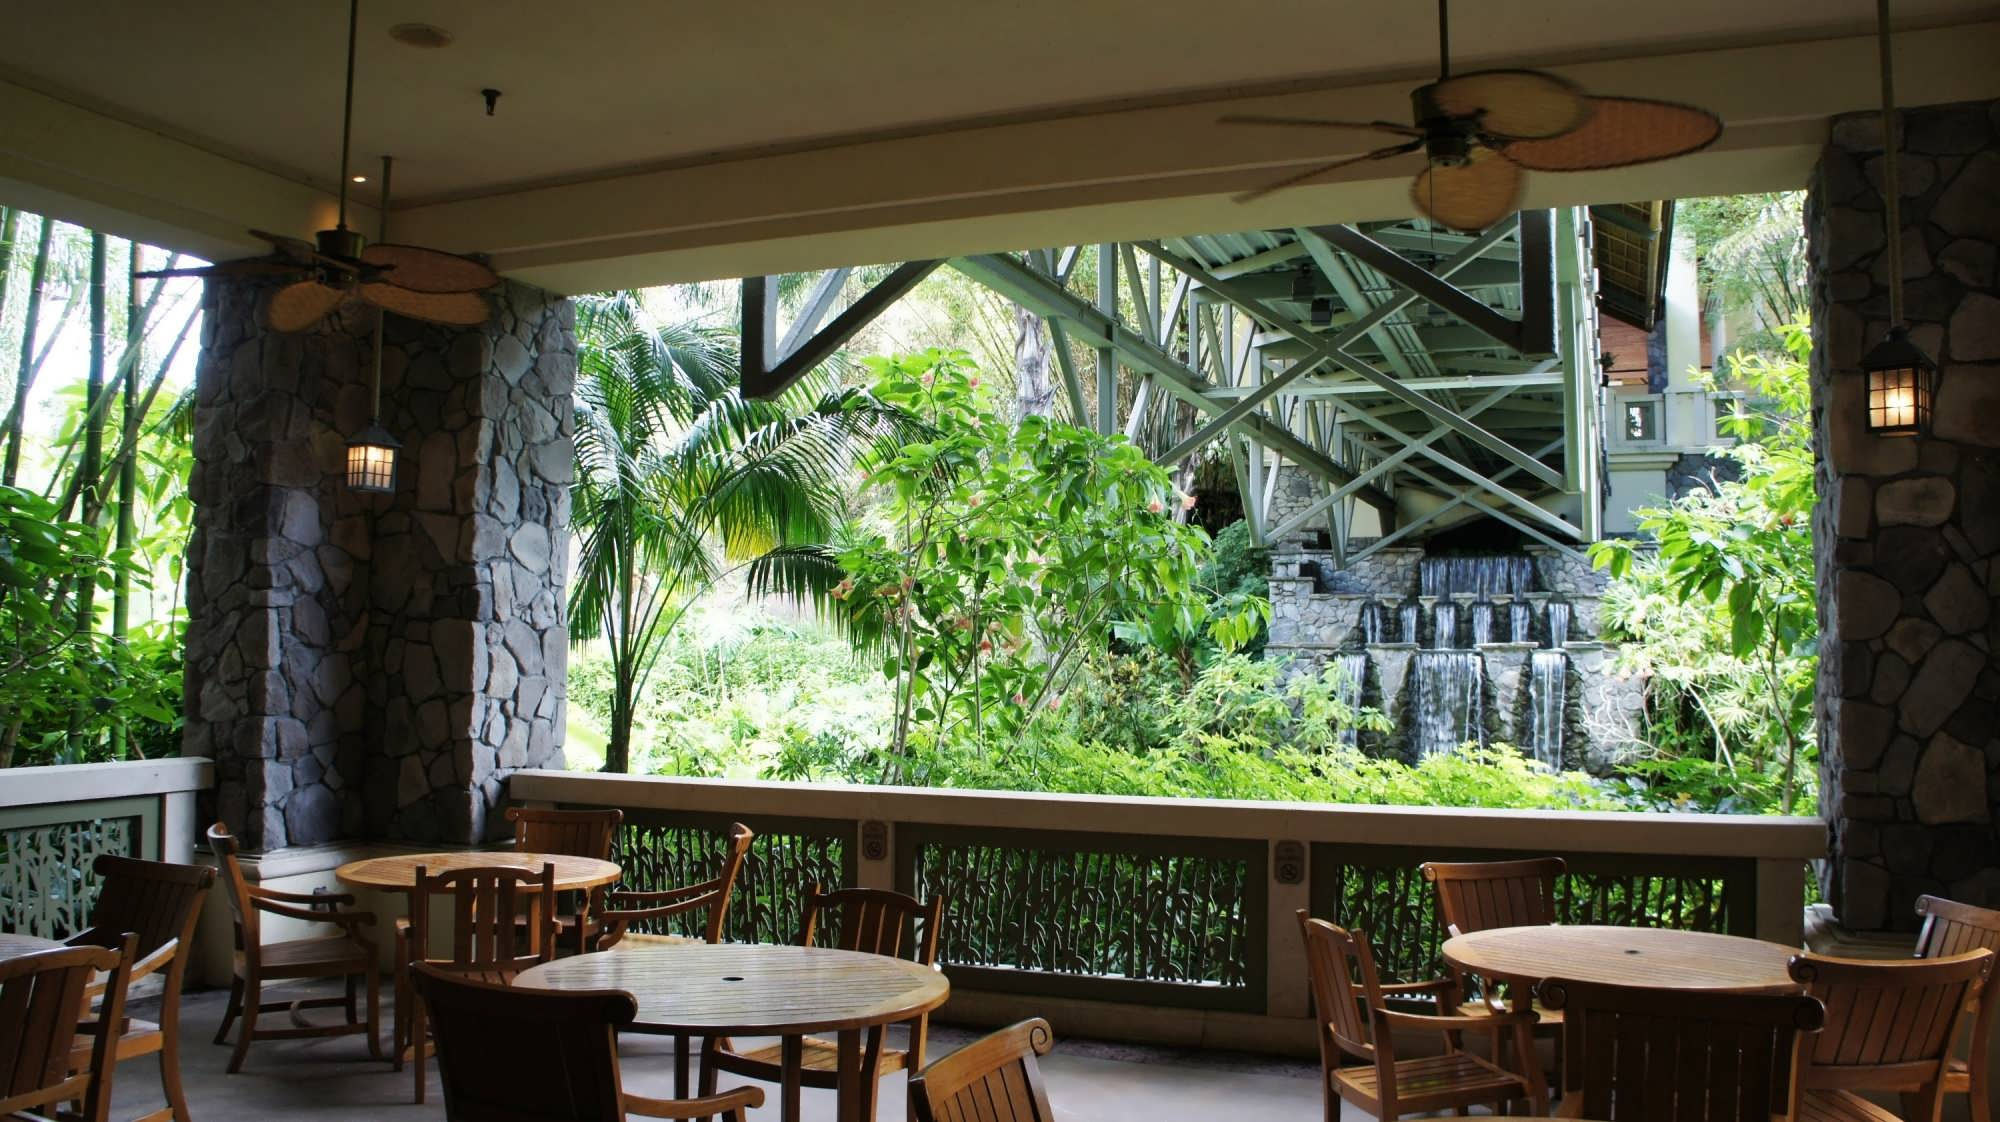 Outdoor seating area by Jake's at Royal Pacific Resort